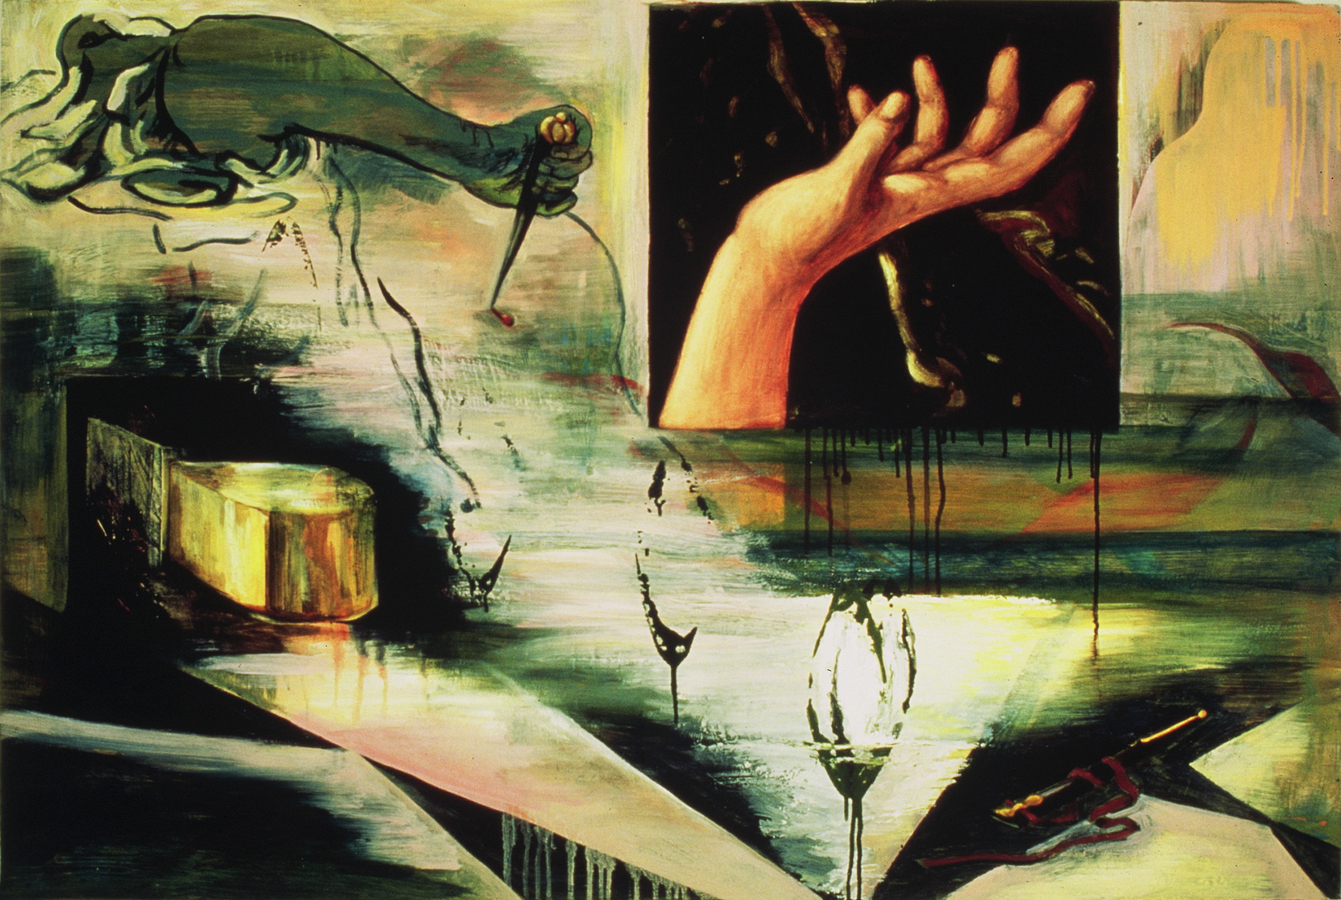 "Lucrece  ©1993 Encaustic, Acrylic and Oil on Wood Panel 36"" x  54"""